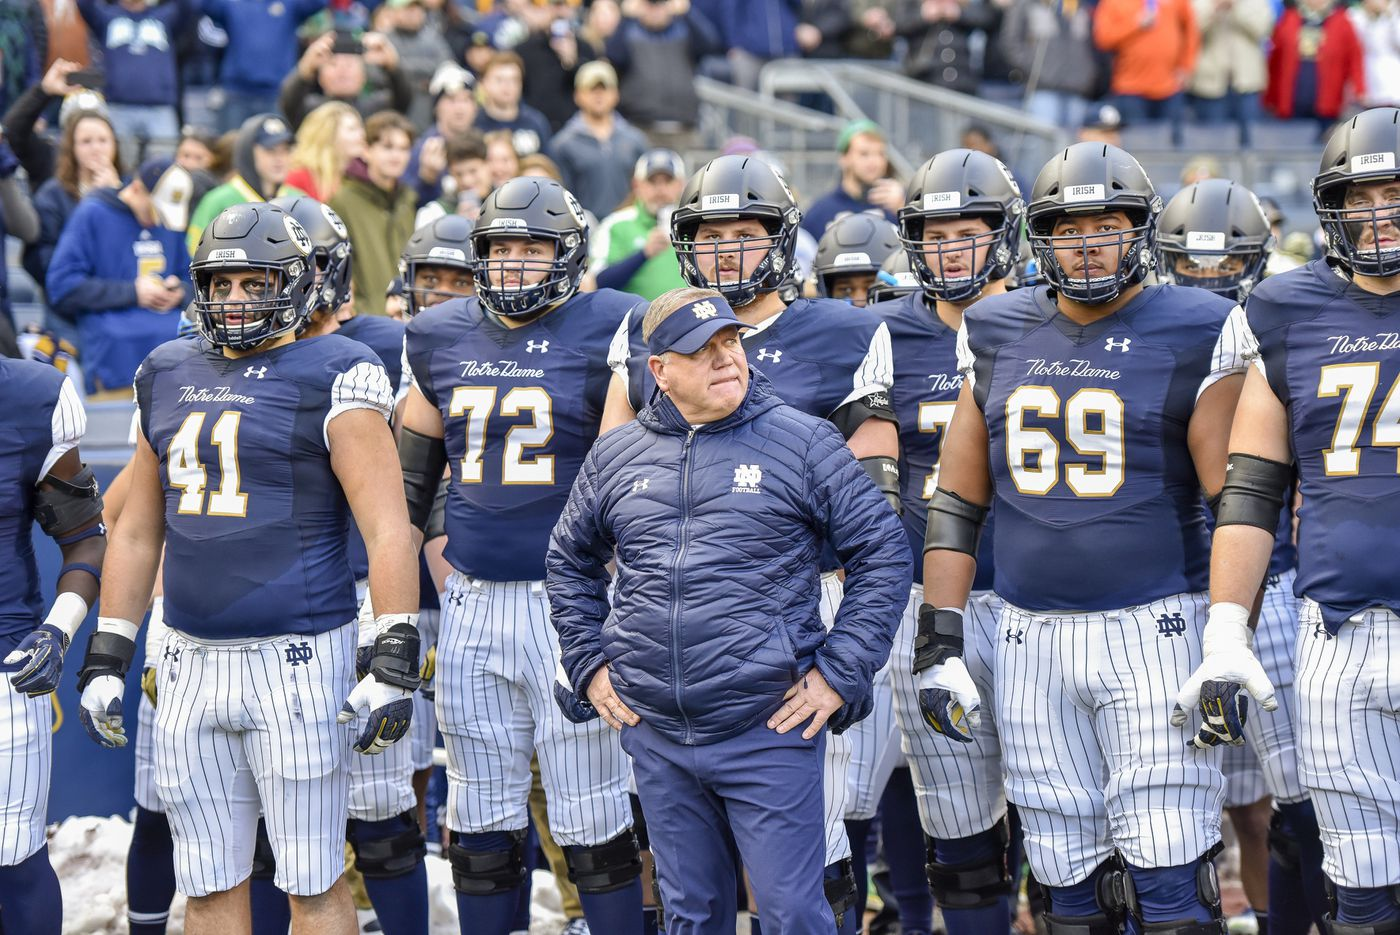 ea9e9a2bd53 Notre Dame head coach Brian Kelly stands with his team before an NCAA  college football game